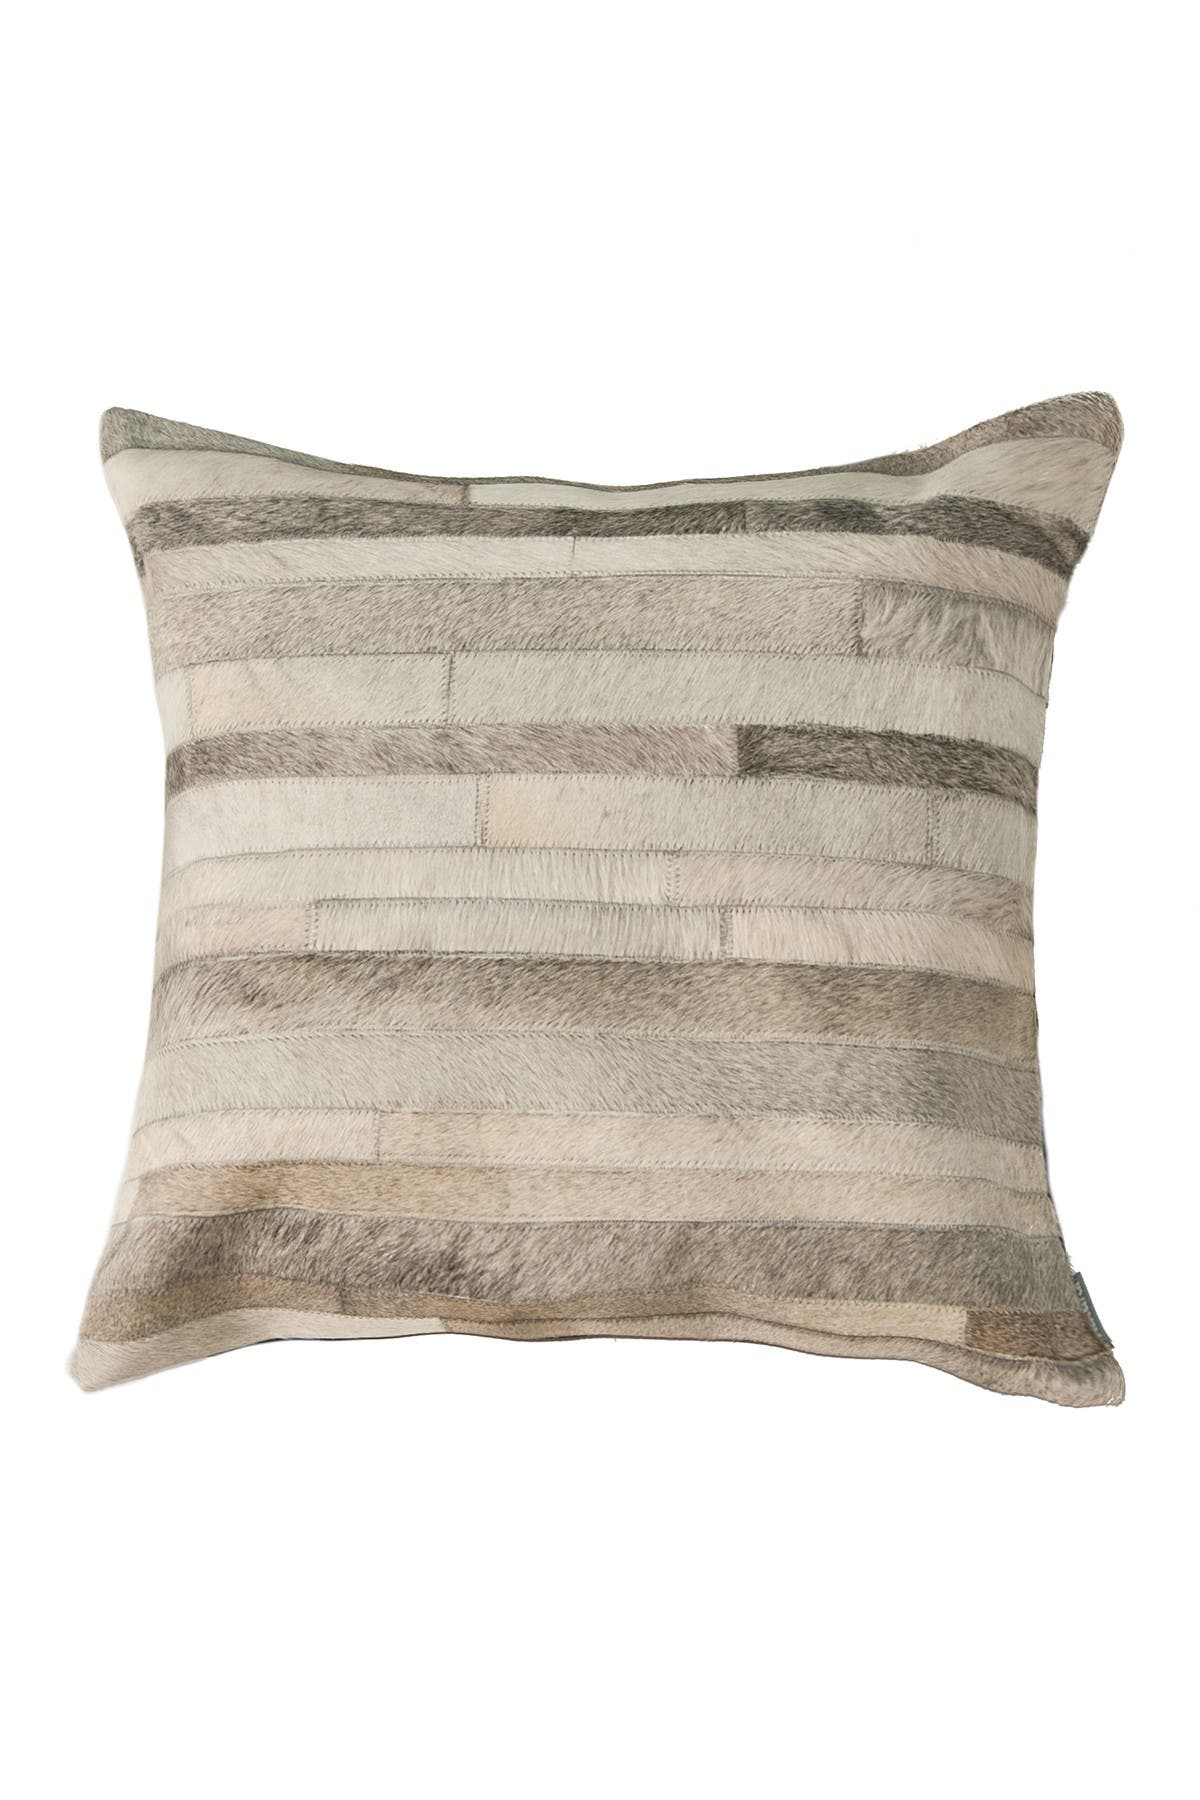 "Image of Natural Torino Classic Large Madrid Genuine Cowhide Pillow - 22""x22"" - Grey"